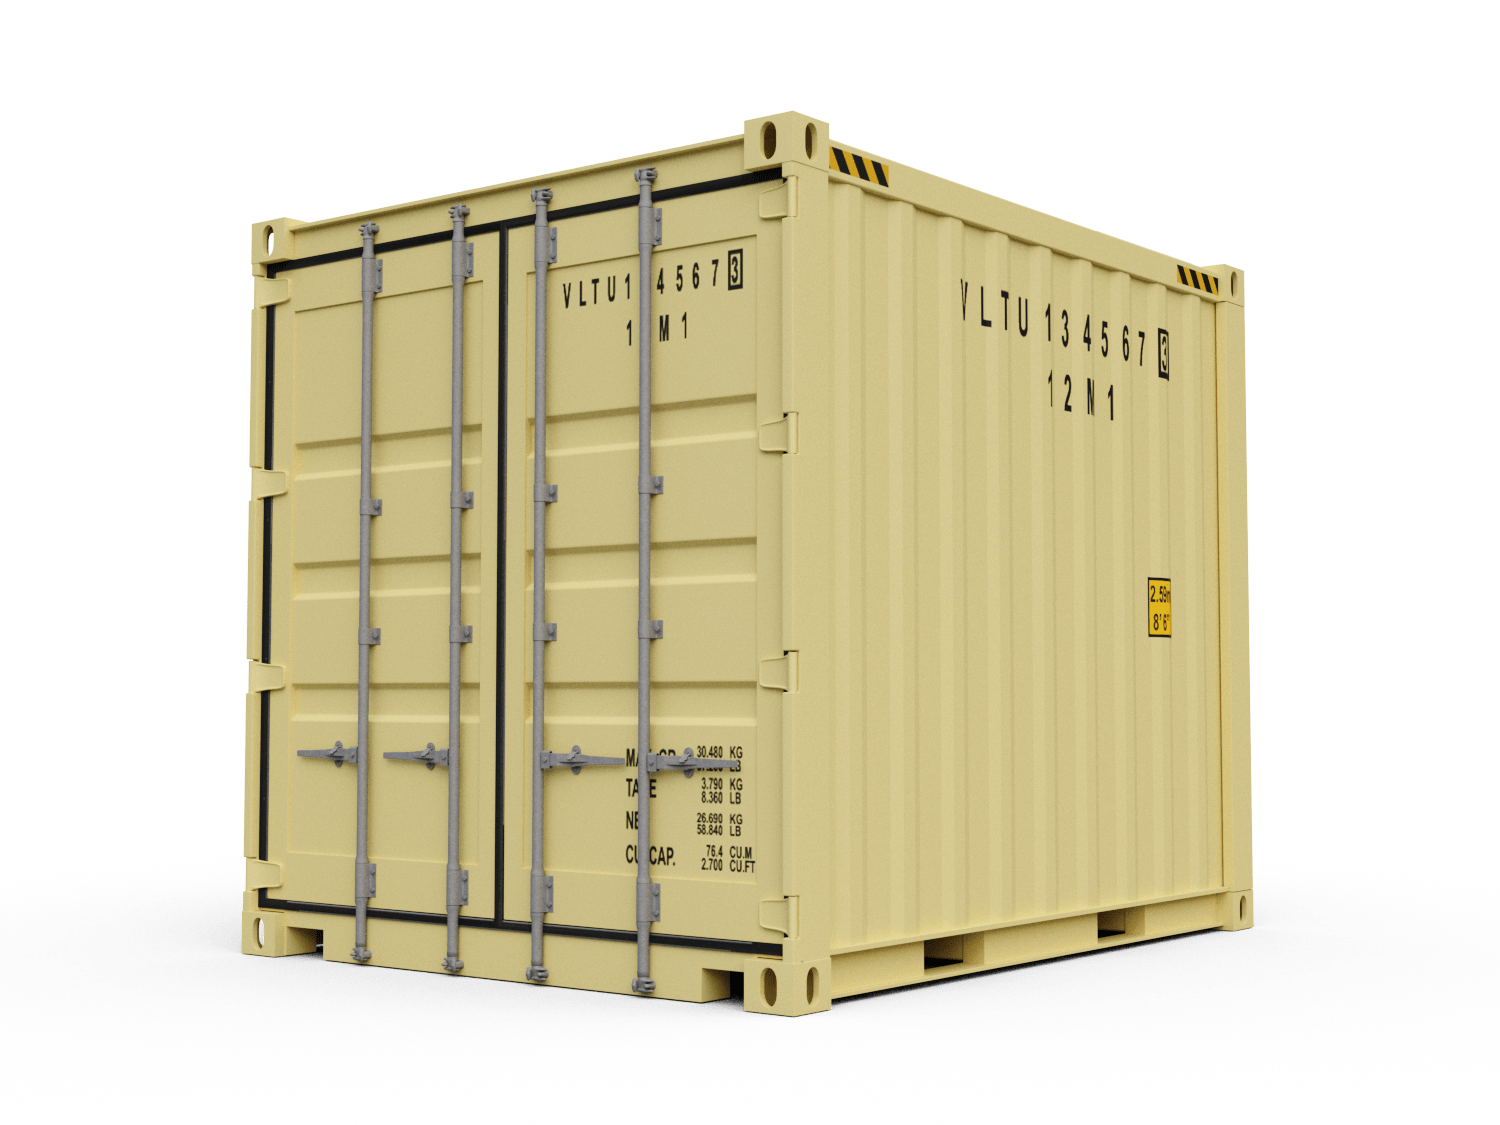 Shipping crate png. Foot containers for